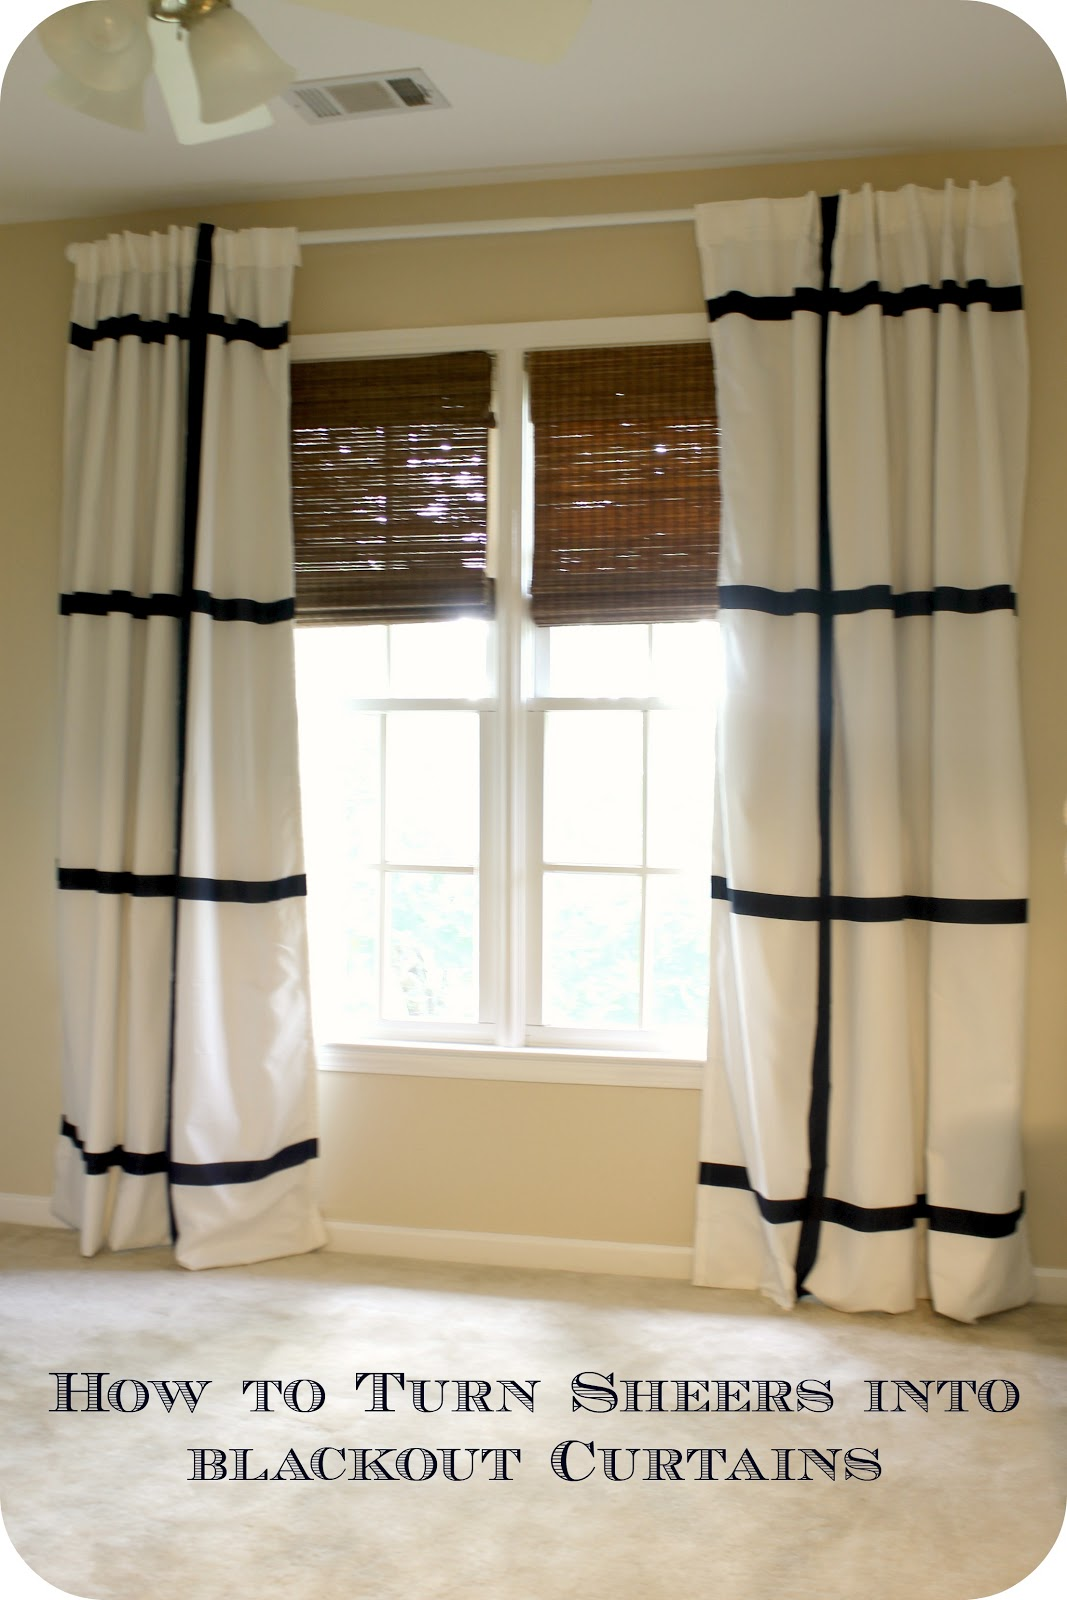 How to turn sheers into black out curtains